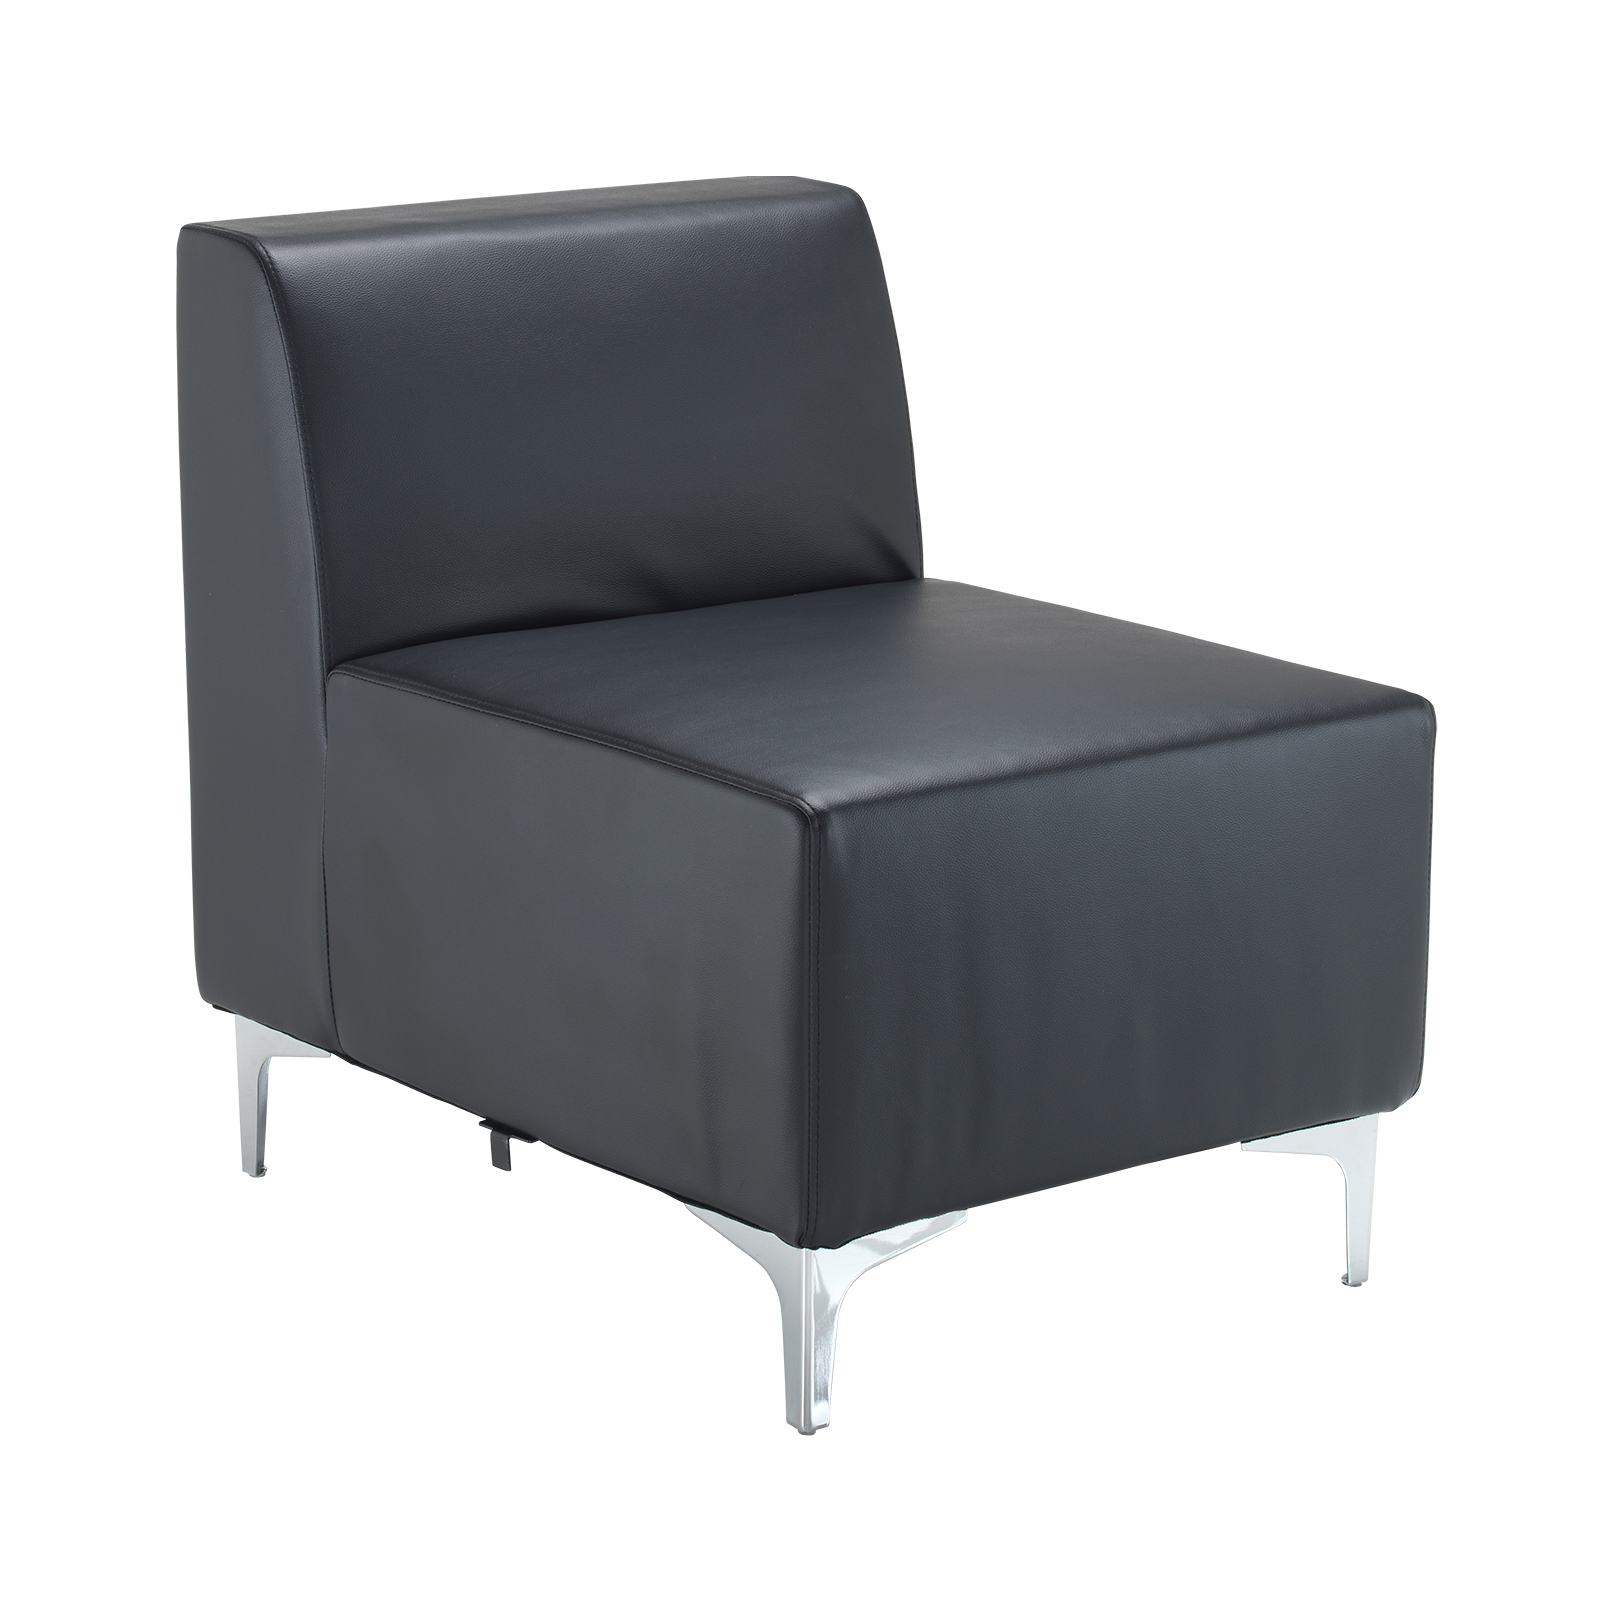 Reception Chairs Quatro leather modular reception seating